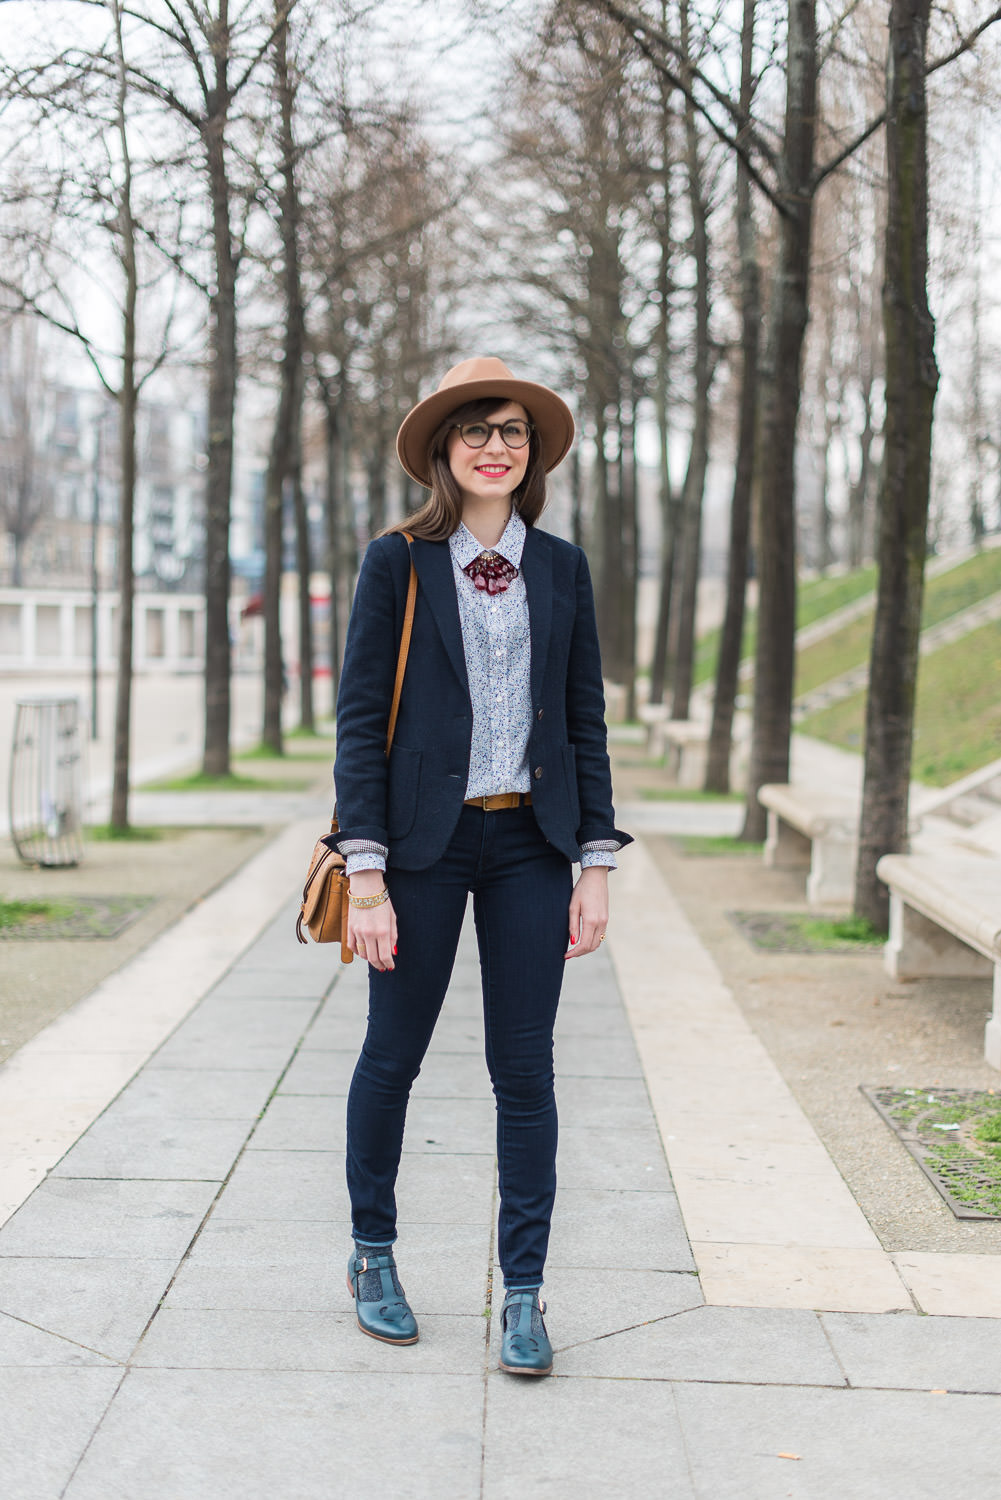 Blog-mode-Mode-And-The-City-looks-collaboration-clarks-orla-kiely-2-7